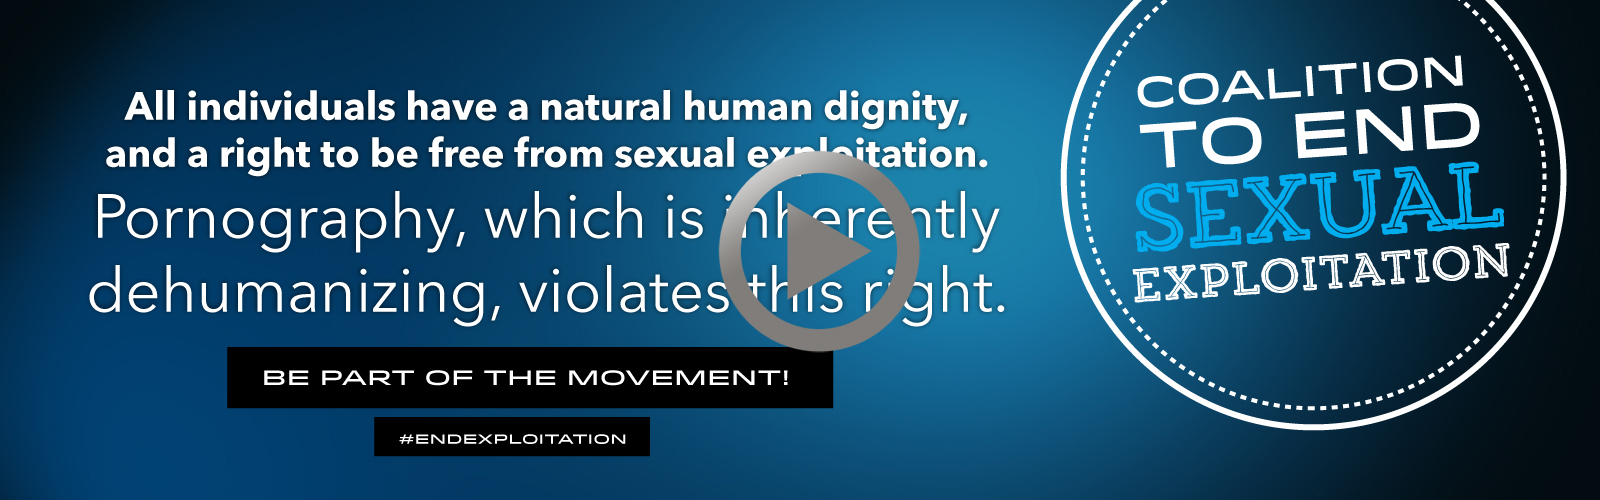 Graphic_CESE_RightToDignity_PlayButton_1600x500